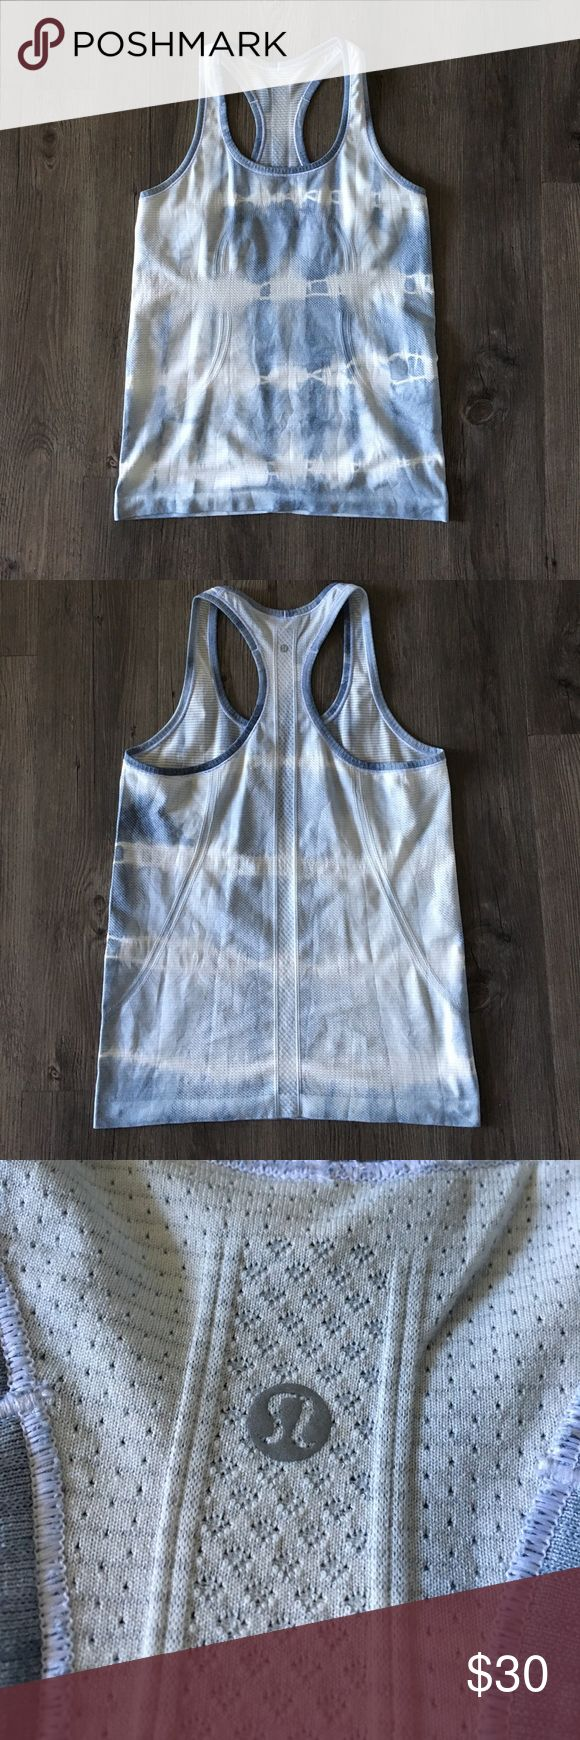 Lululemon Swiftly Top - Silver Fox Grey Tie Dye Tags have been removed. Worn maybe 5-7 times. I wash and hang dry every time. Fabric is still in perfect condition as far as I can see; there are no snags, stains, rips, or holes. lululemon athletica Tops Tank Tops